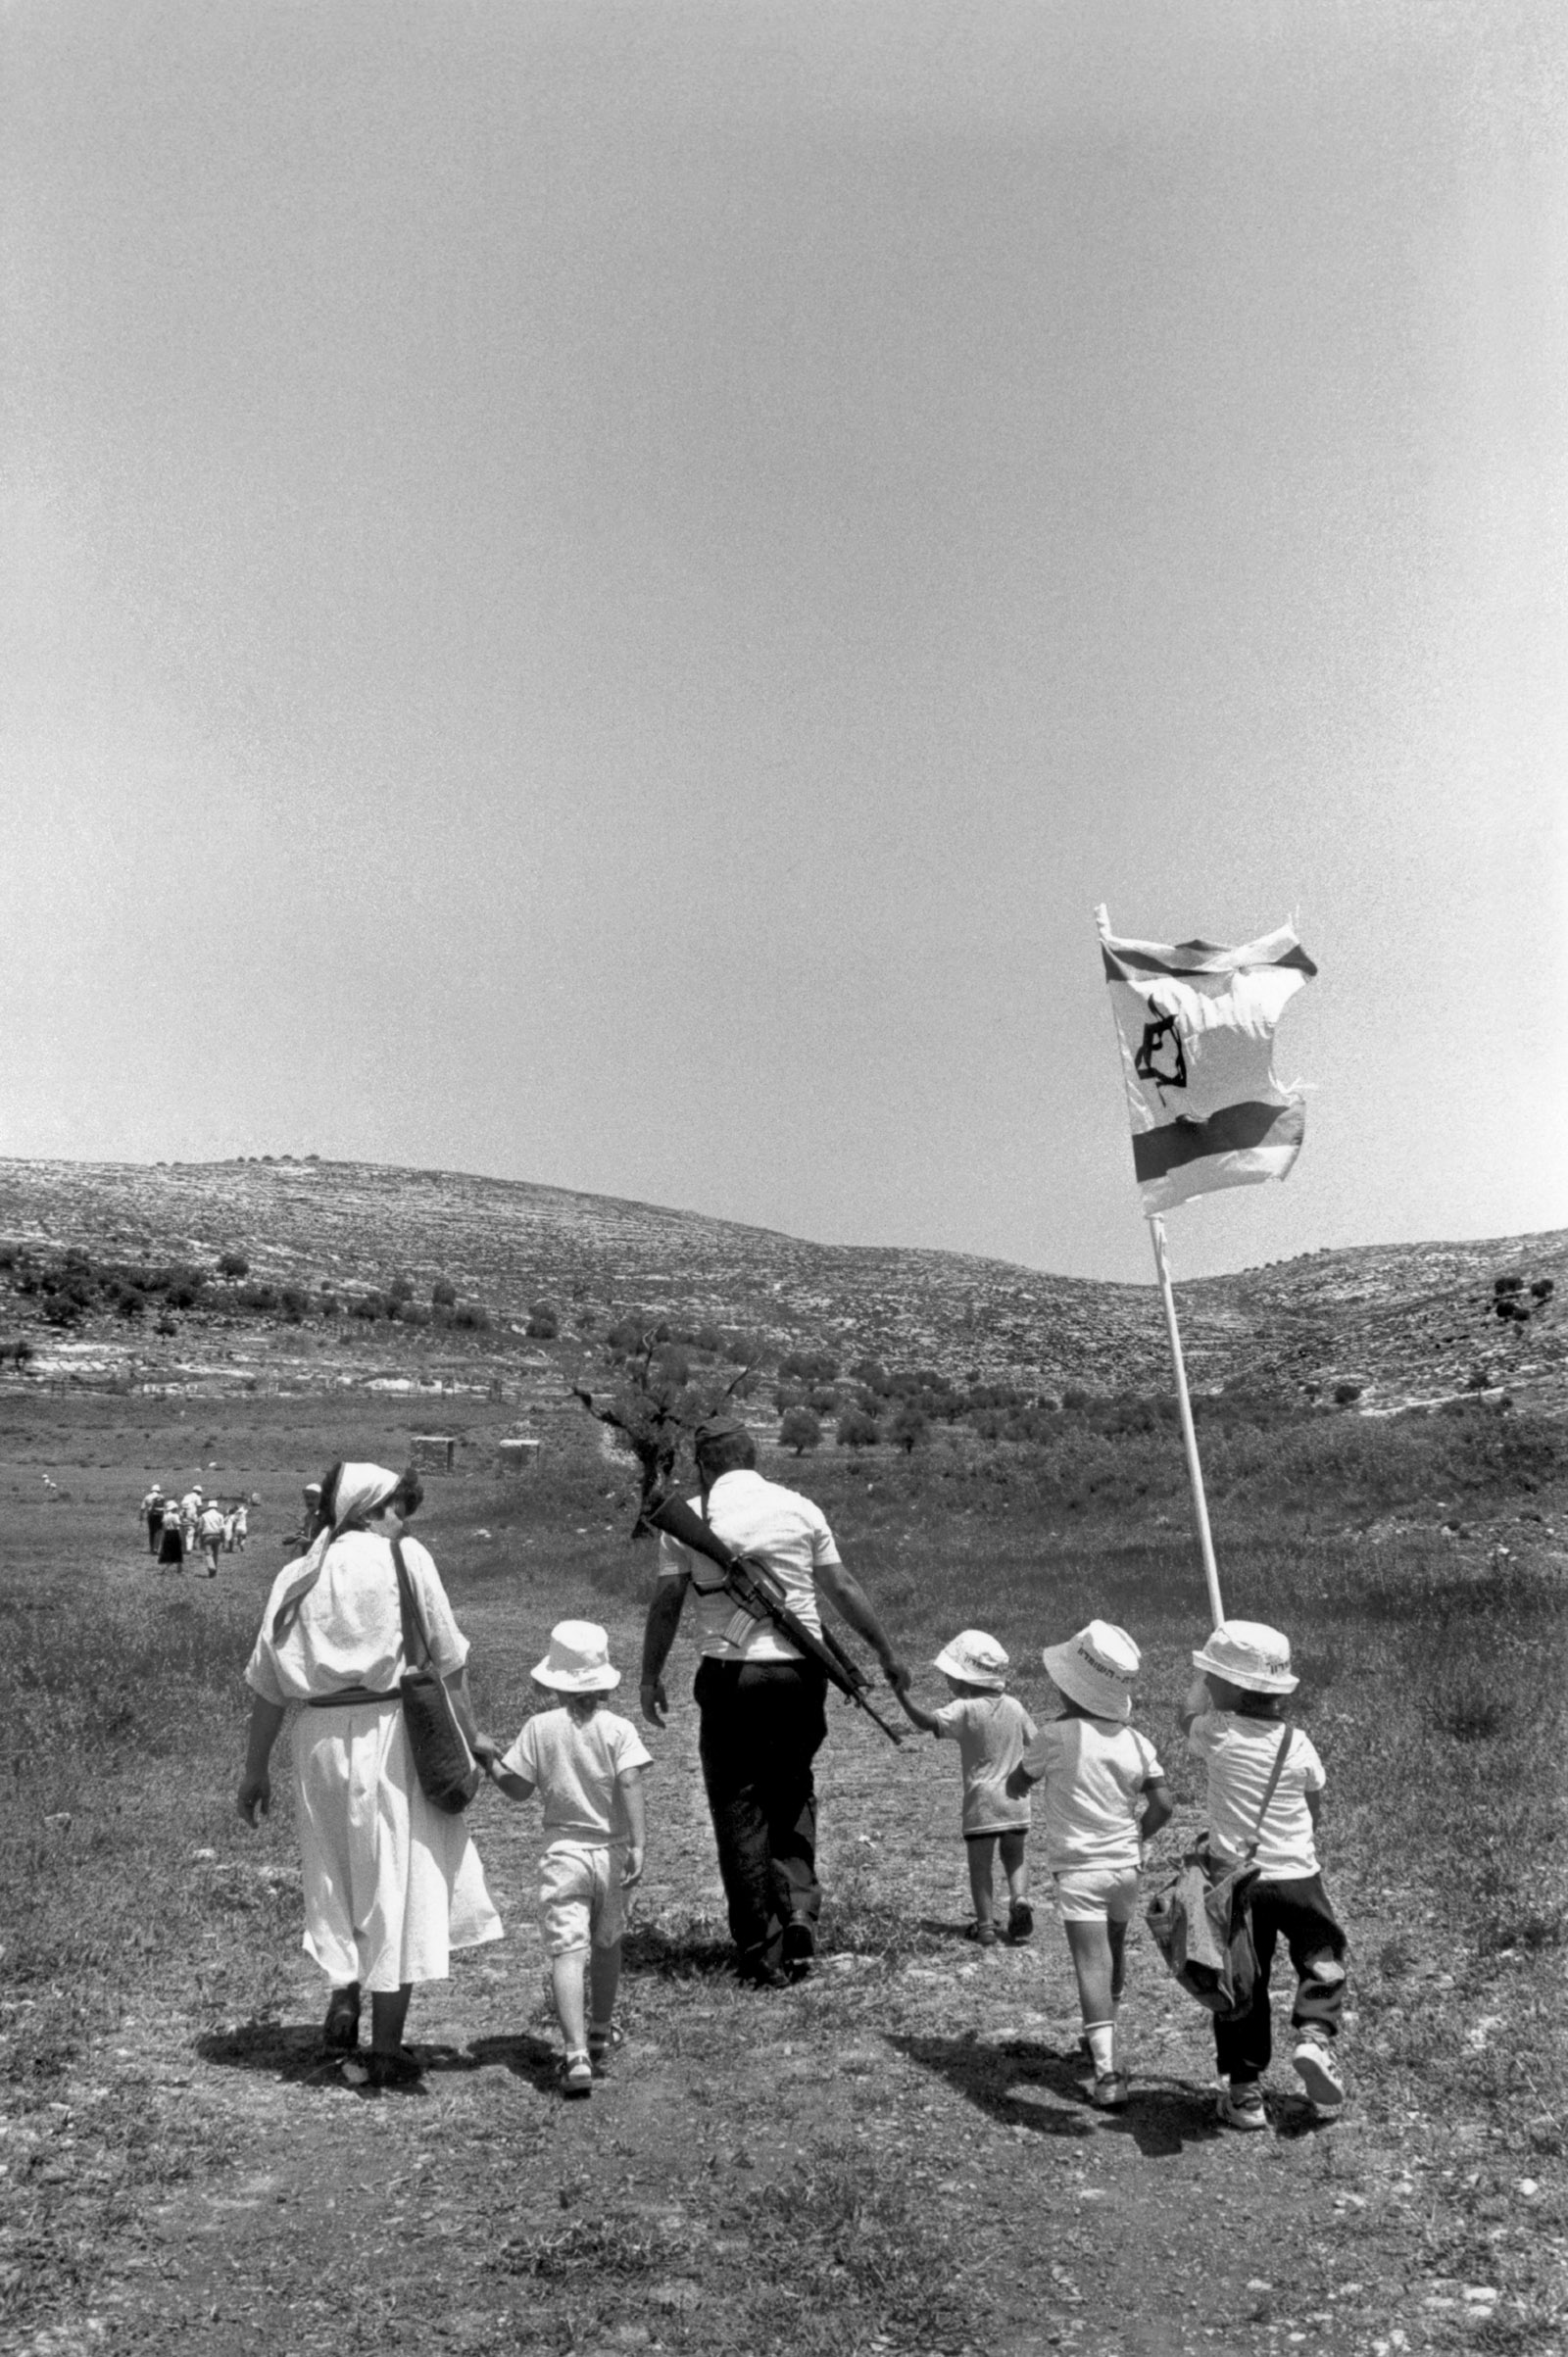 A Jewish family in the occupied West Bank, 1988